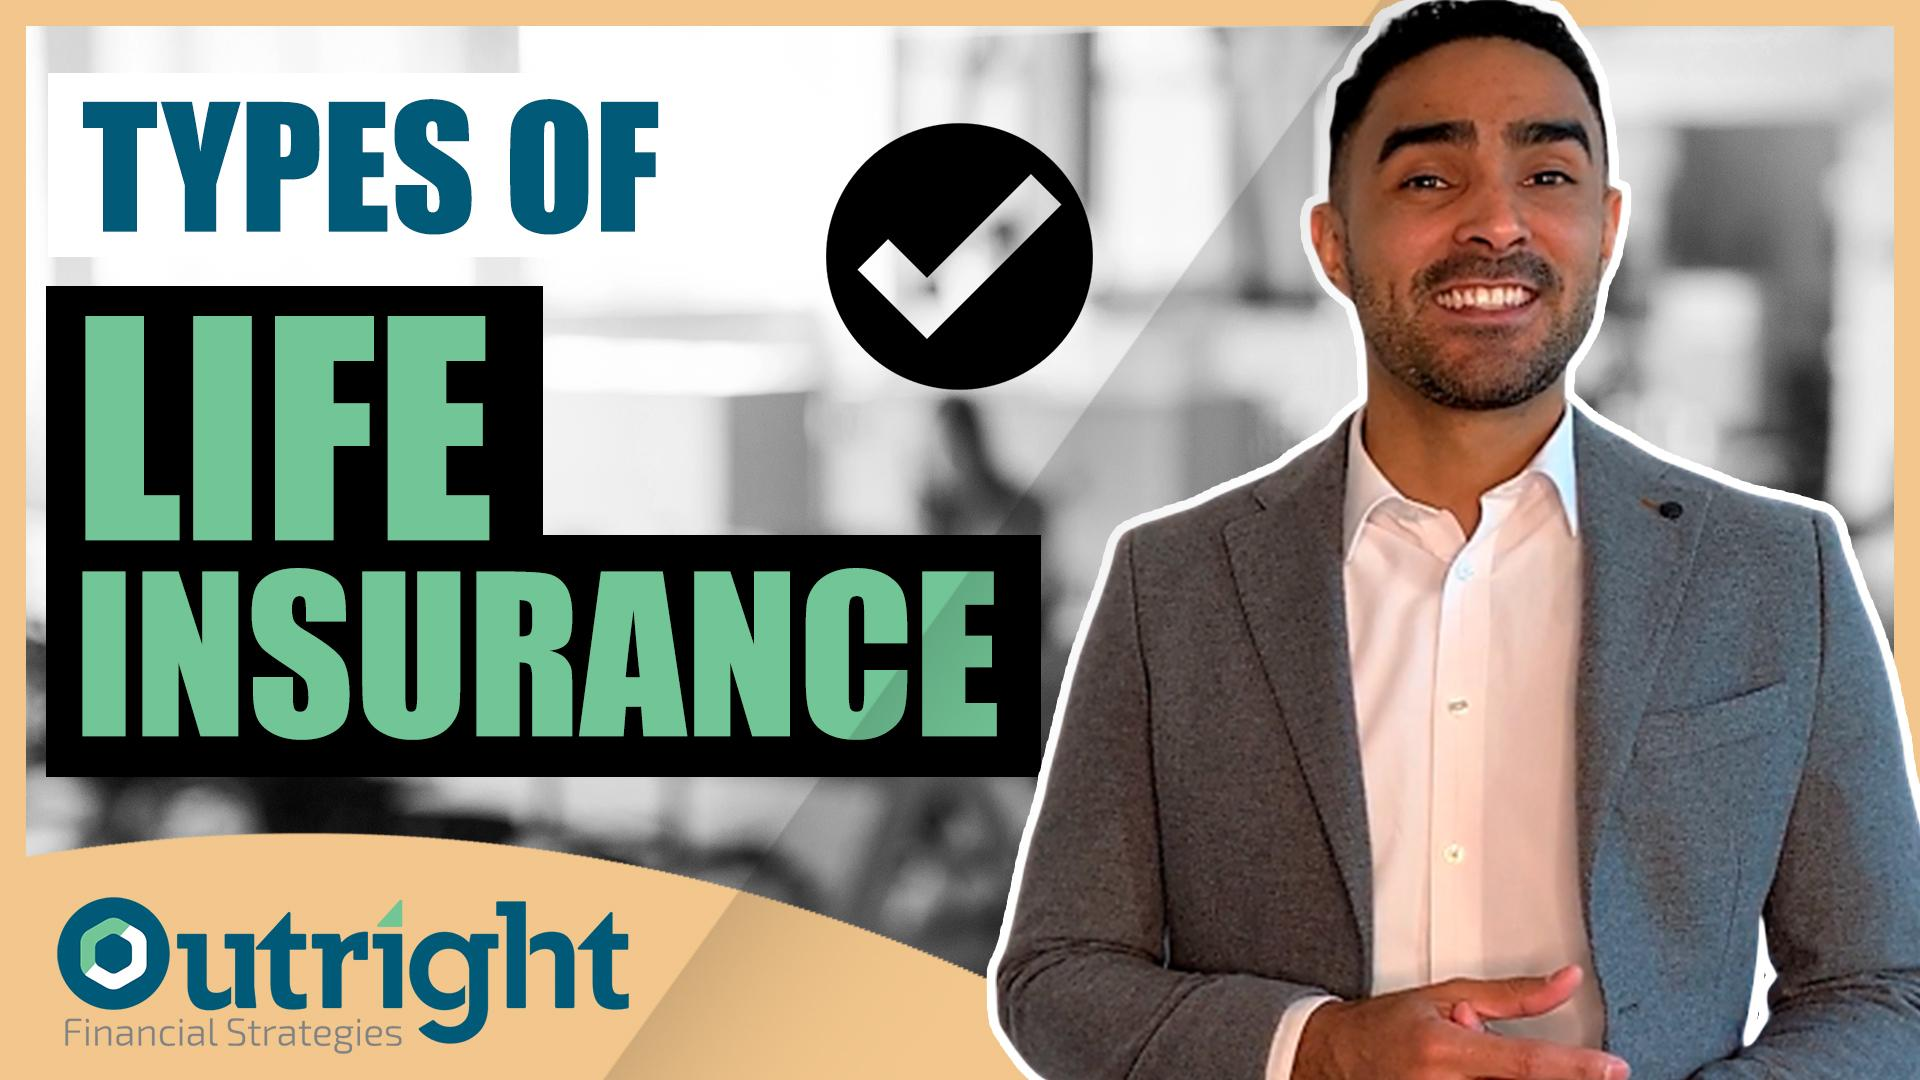 How Many Types of Life Insurance Are There? Thumbnail